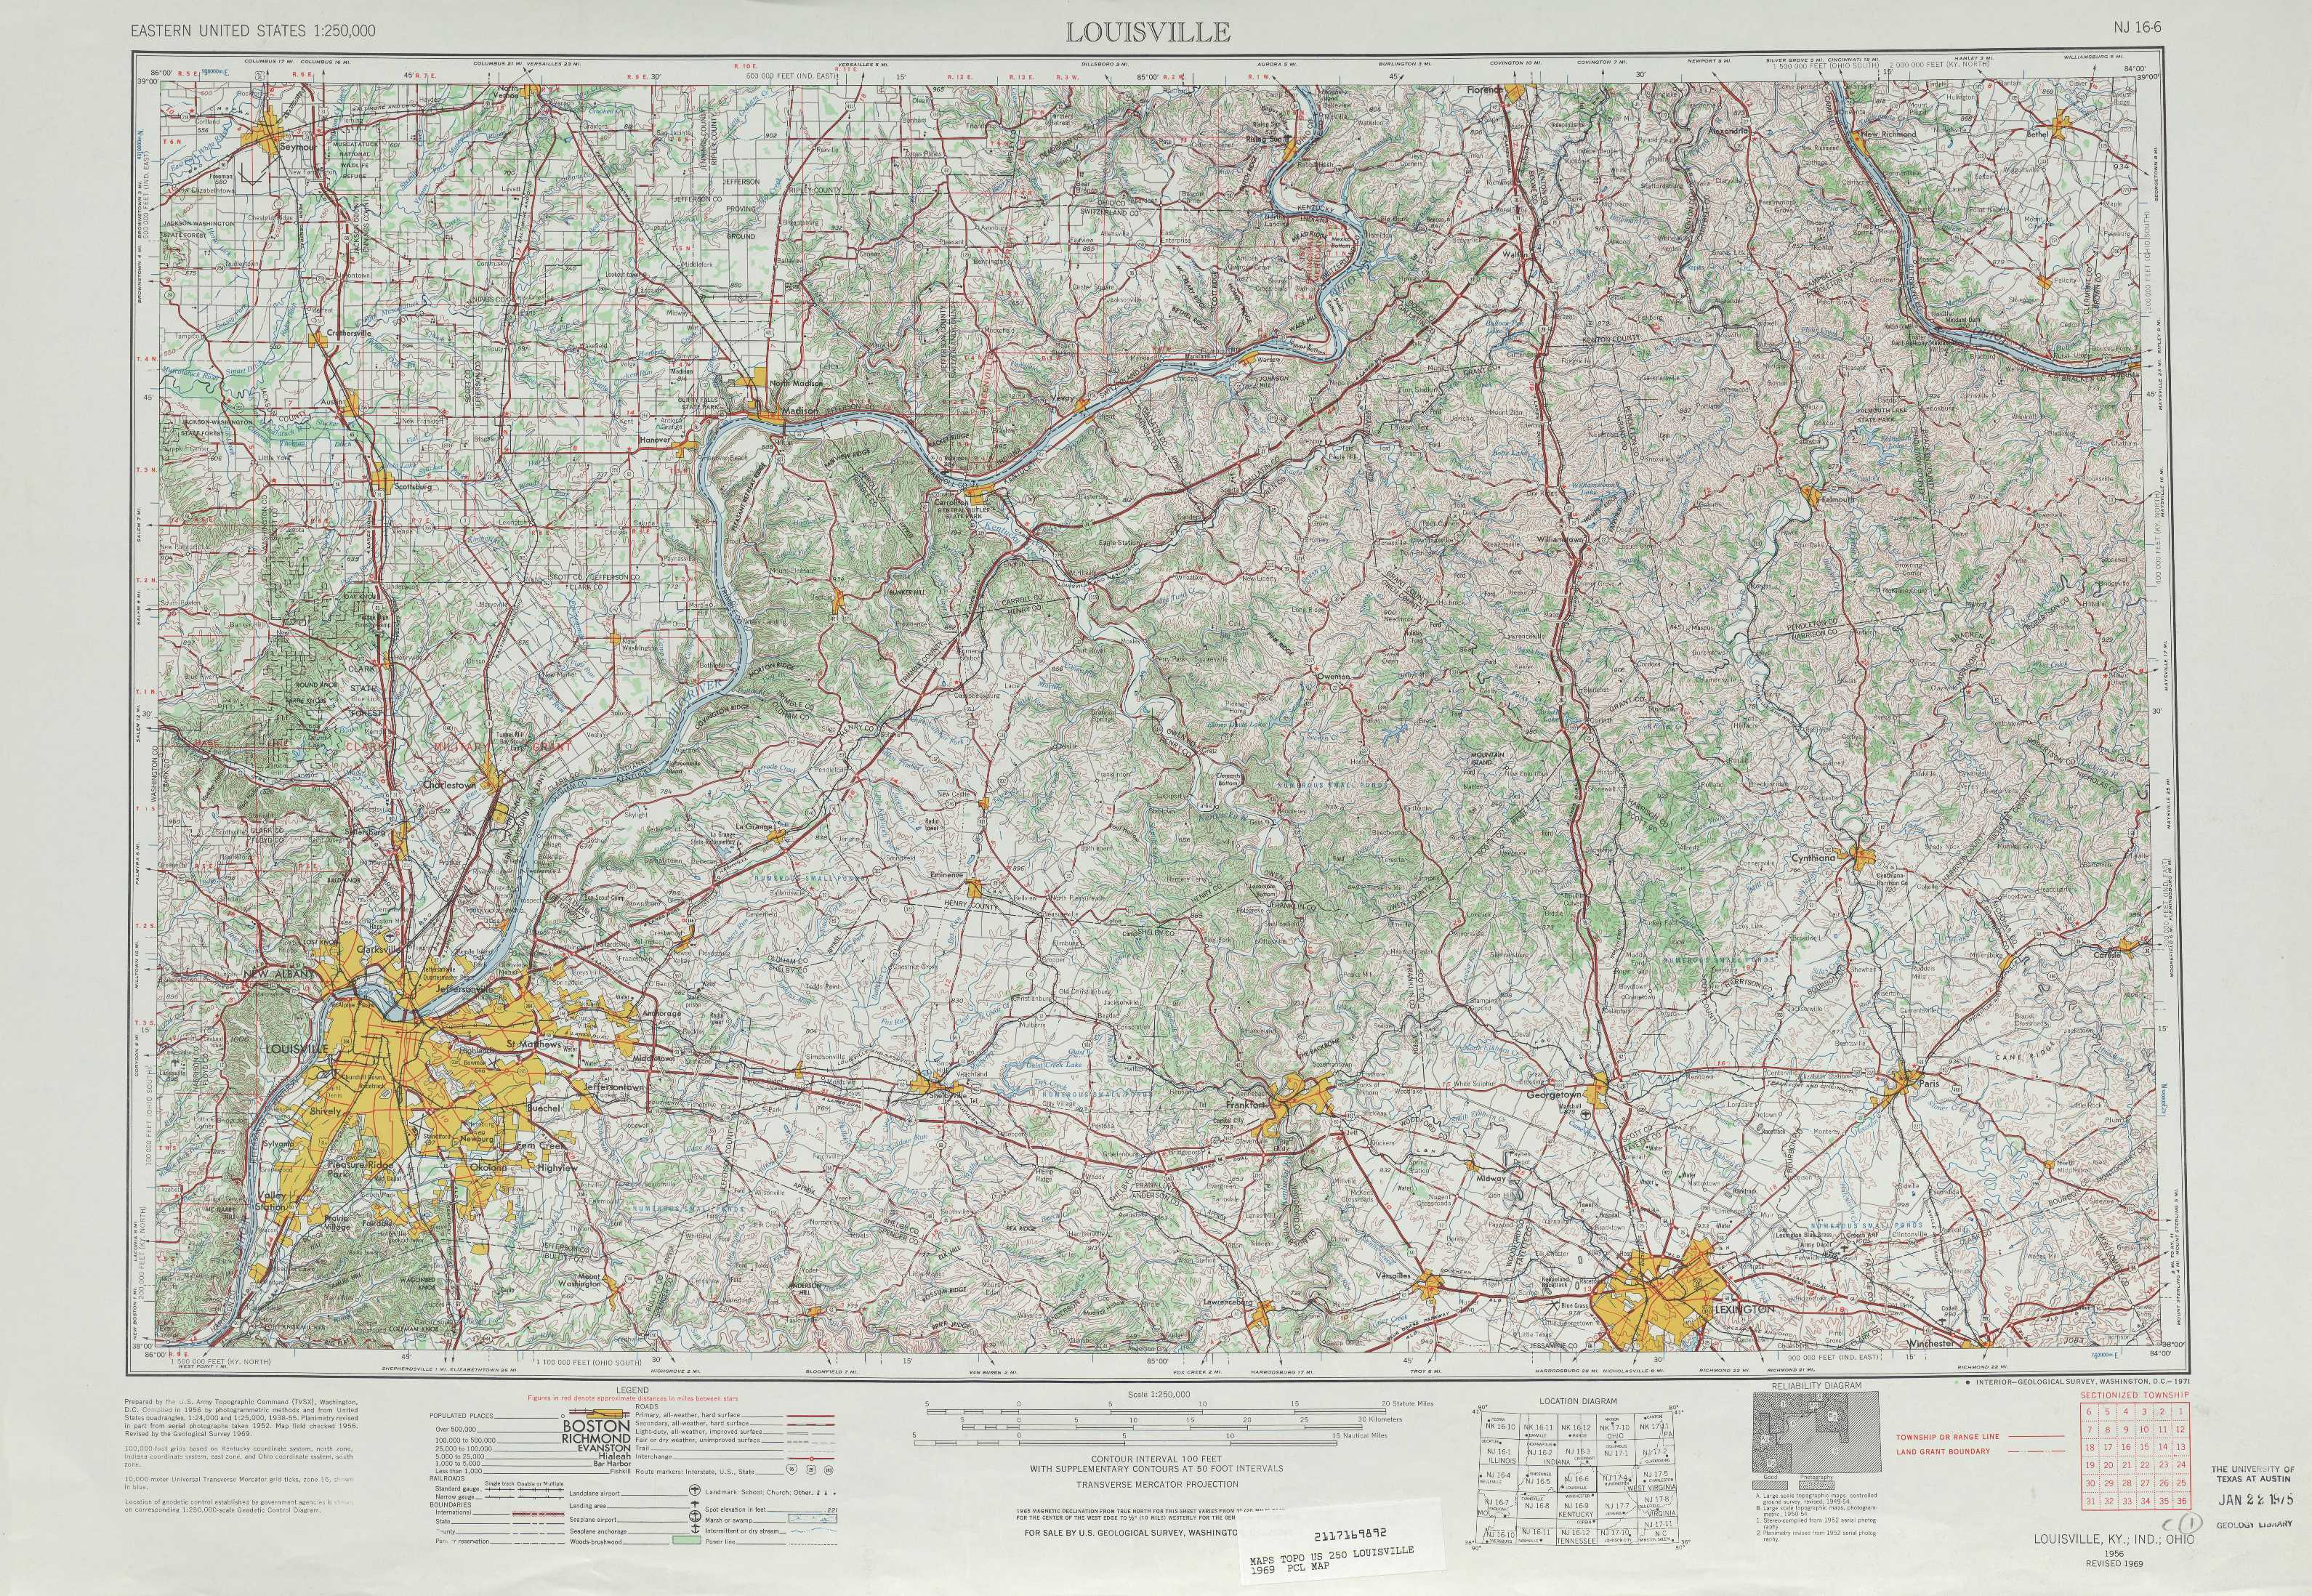 Louisville Topographic Maps Ky In Oh Usgs Topo Quad 38084a1 At